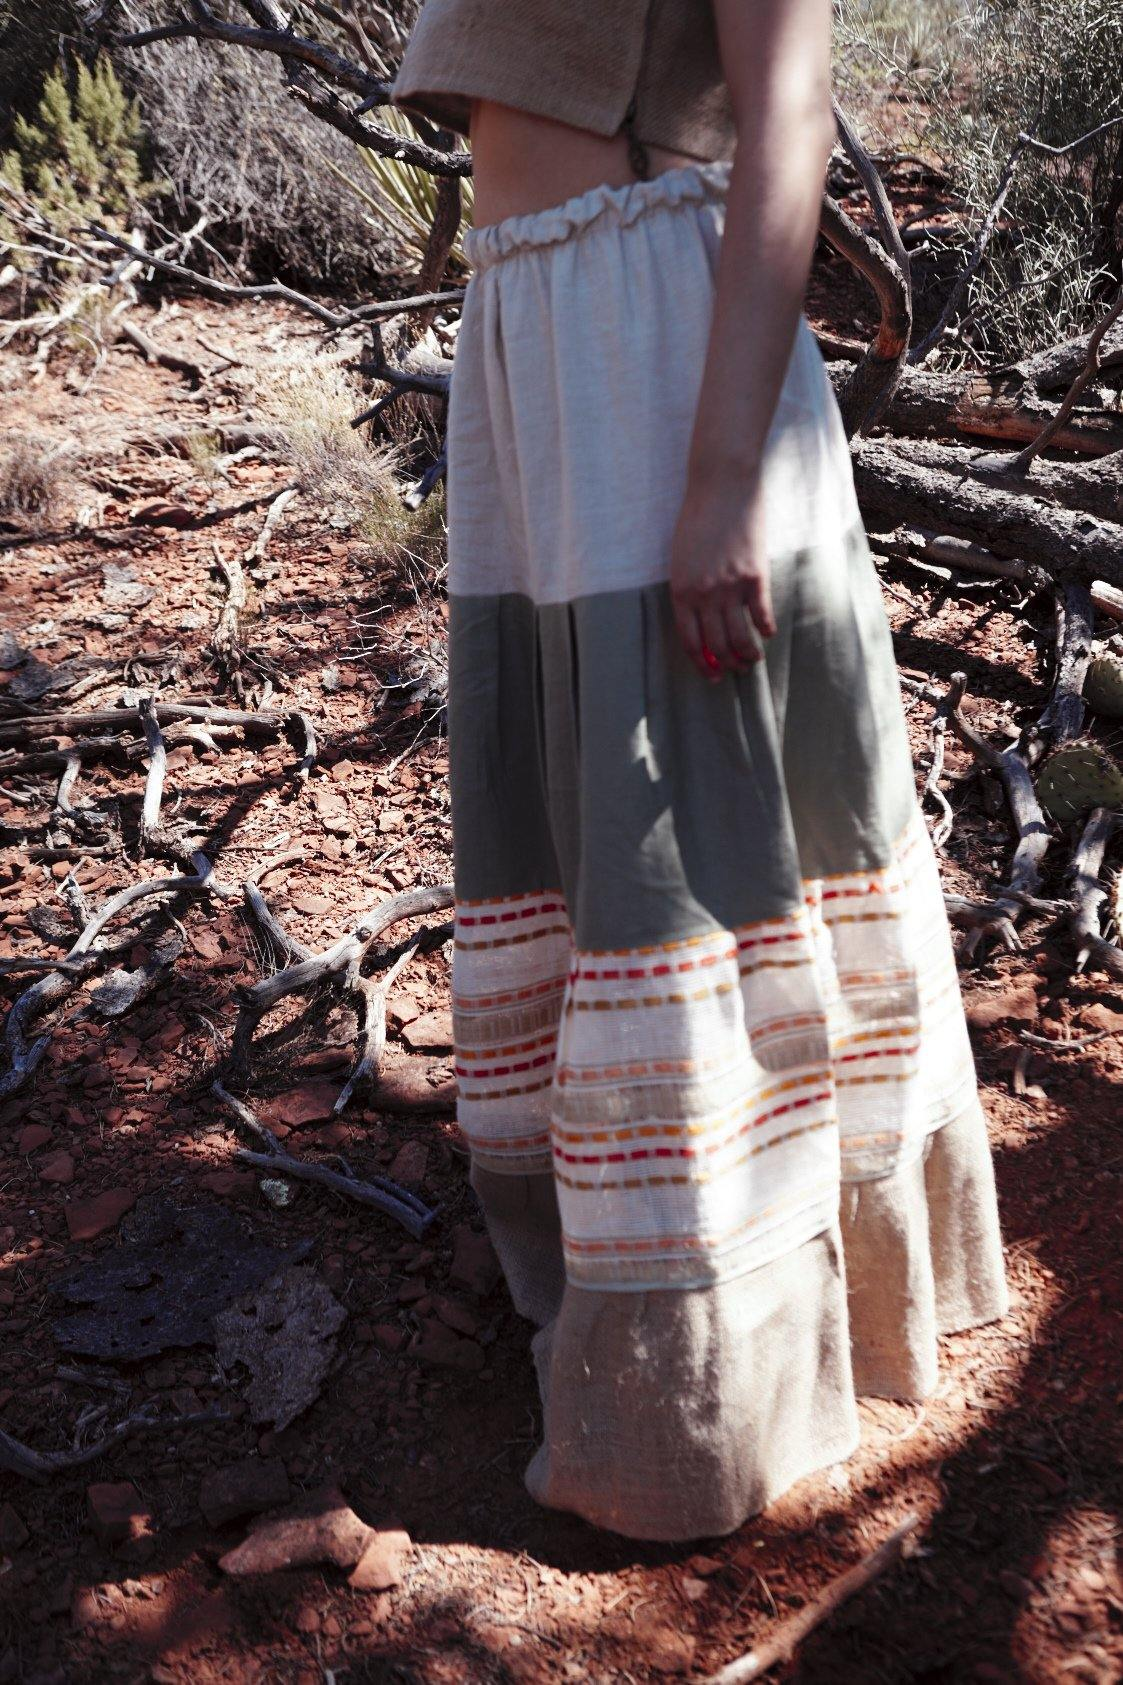 BROCATE SKIRT - Handwoven Artisanal Cotton Skirt - Natural Rough